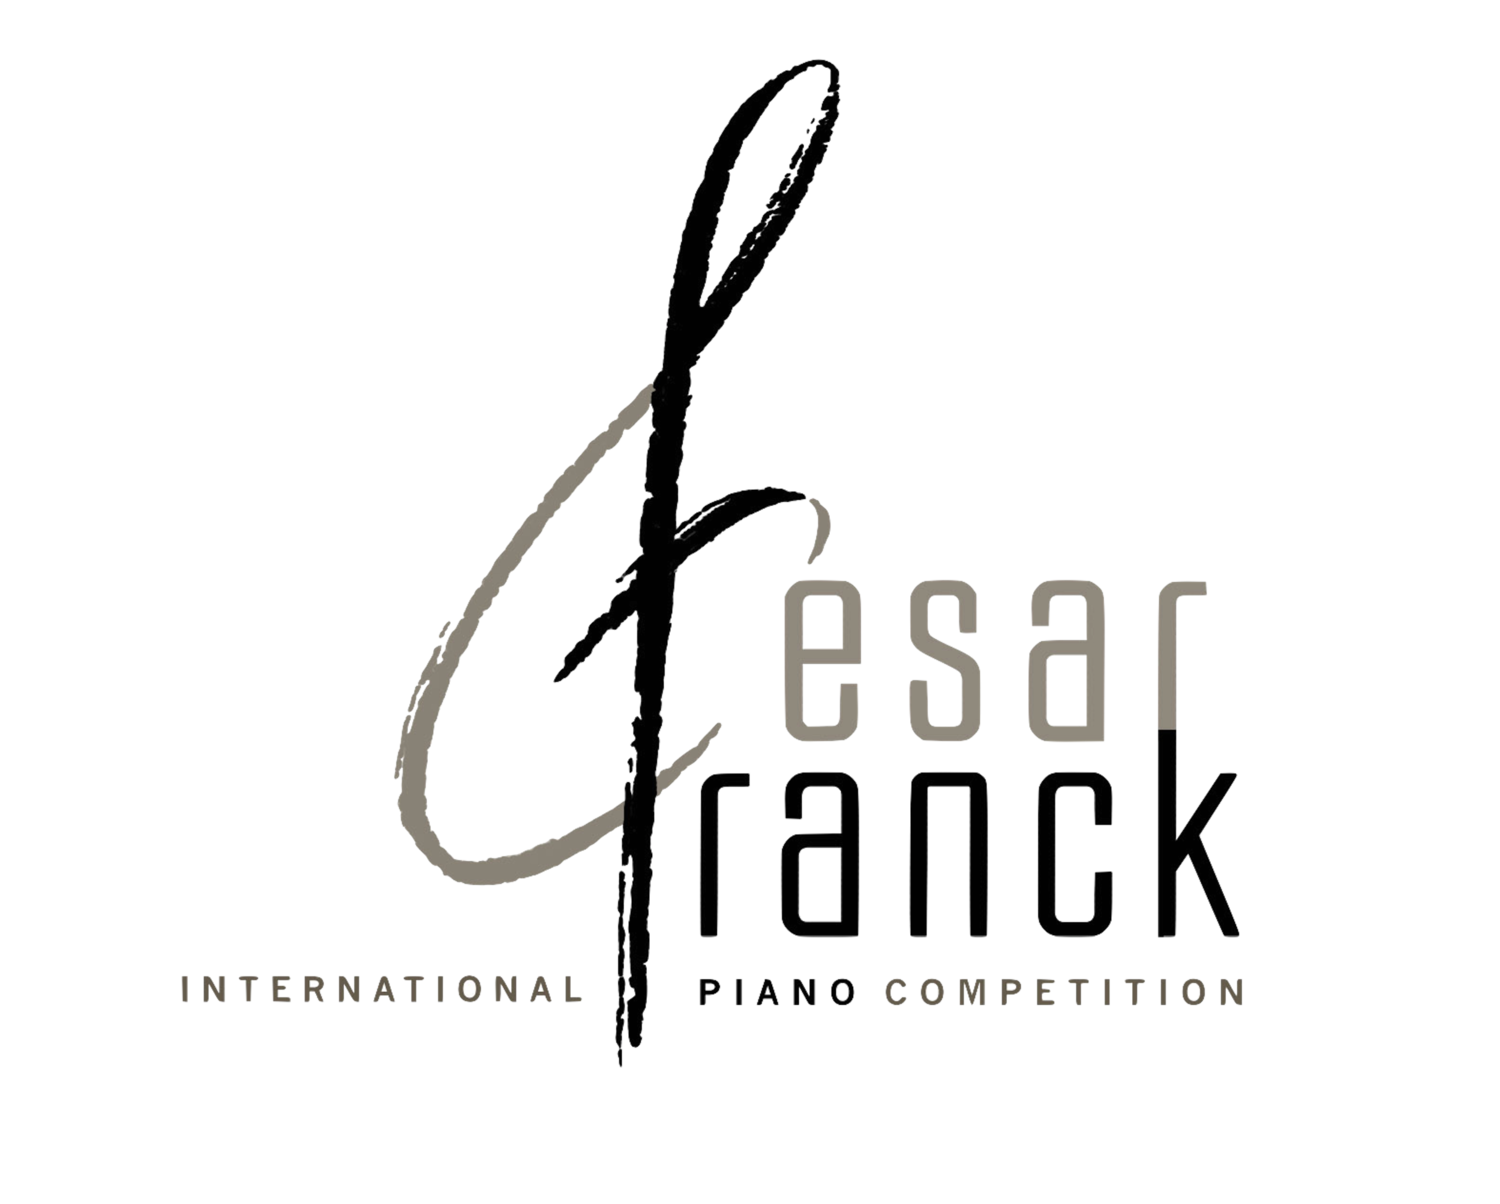 César Franck International Piano Competition